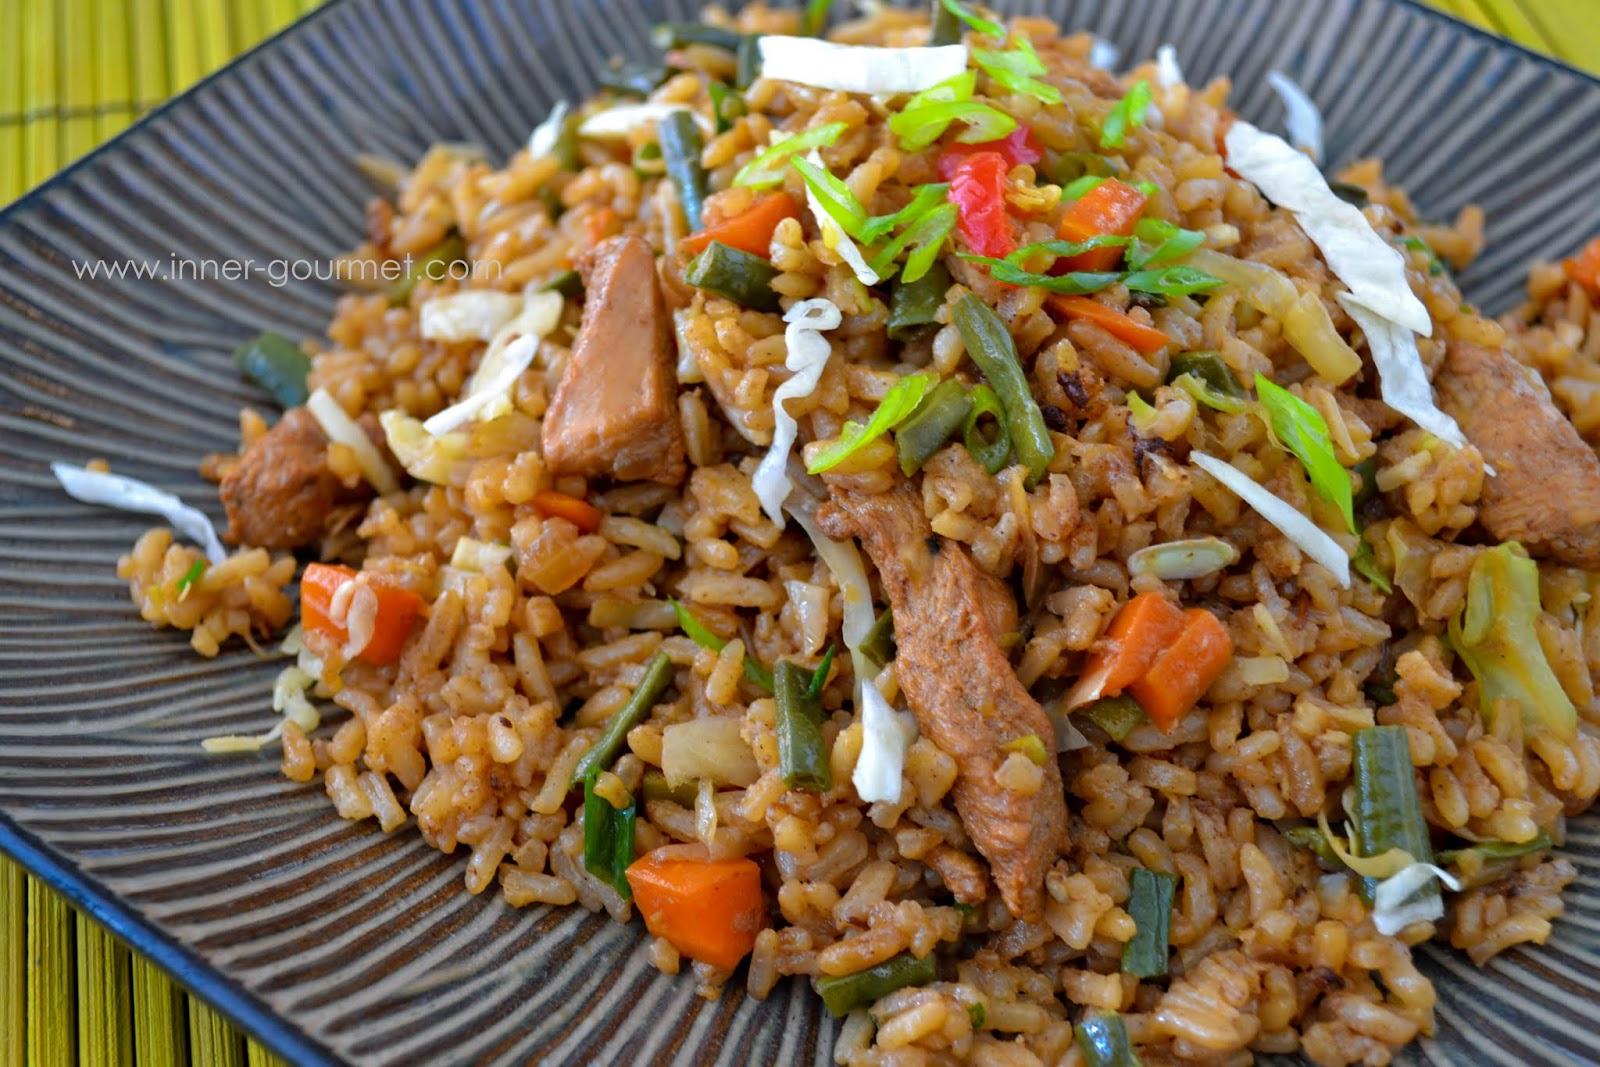 Guyanese-style Fried Rice